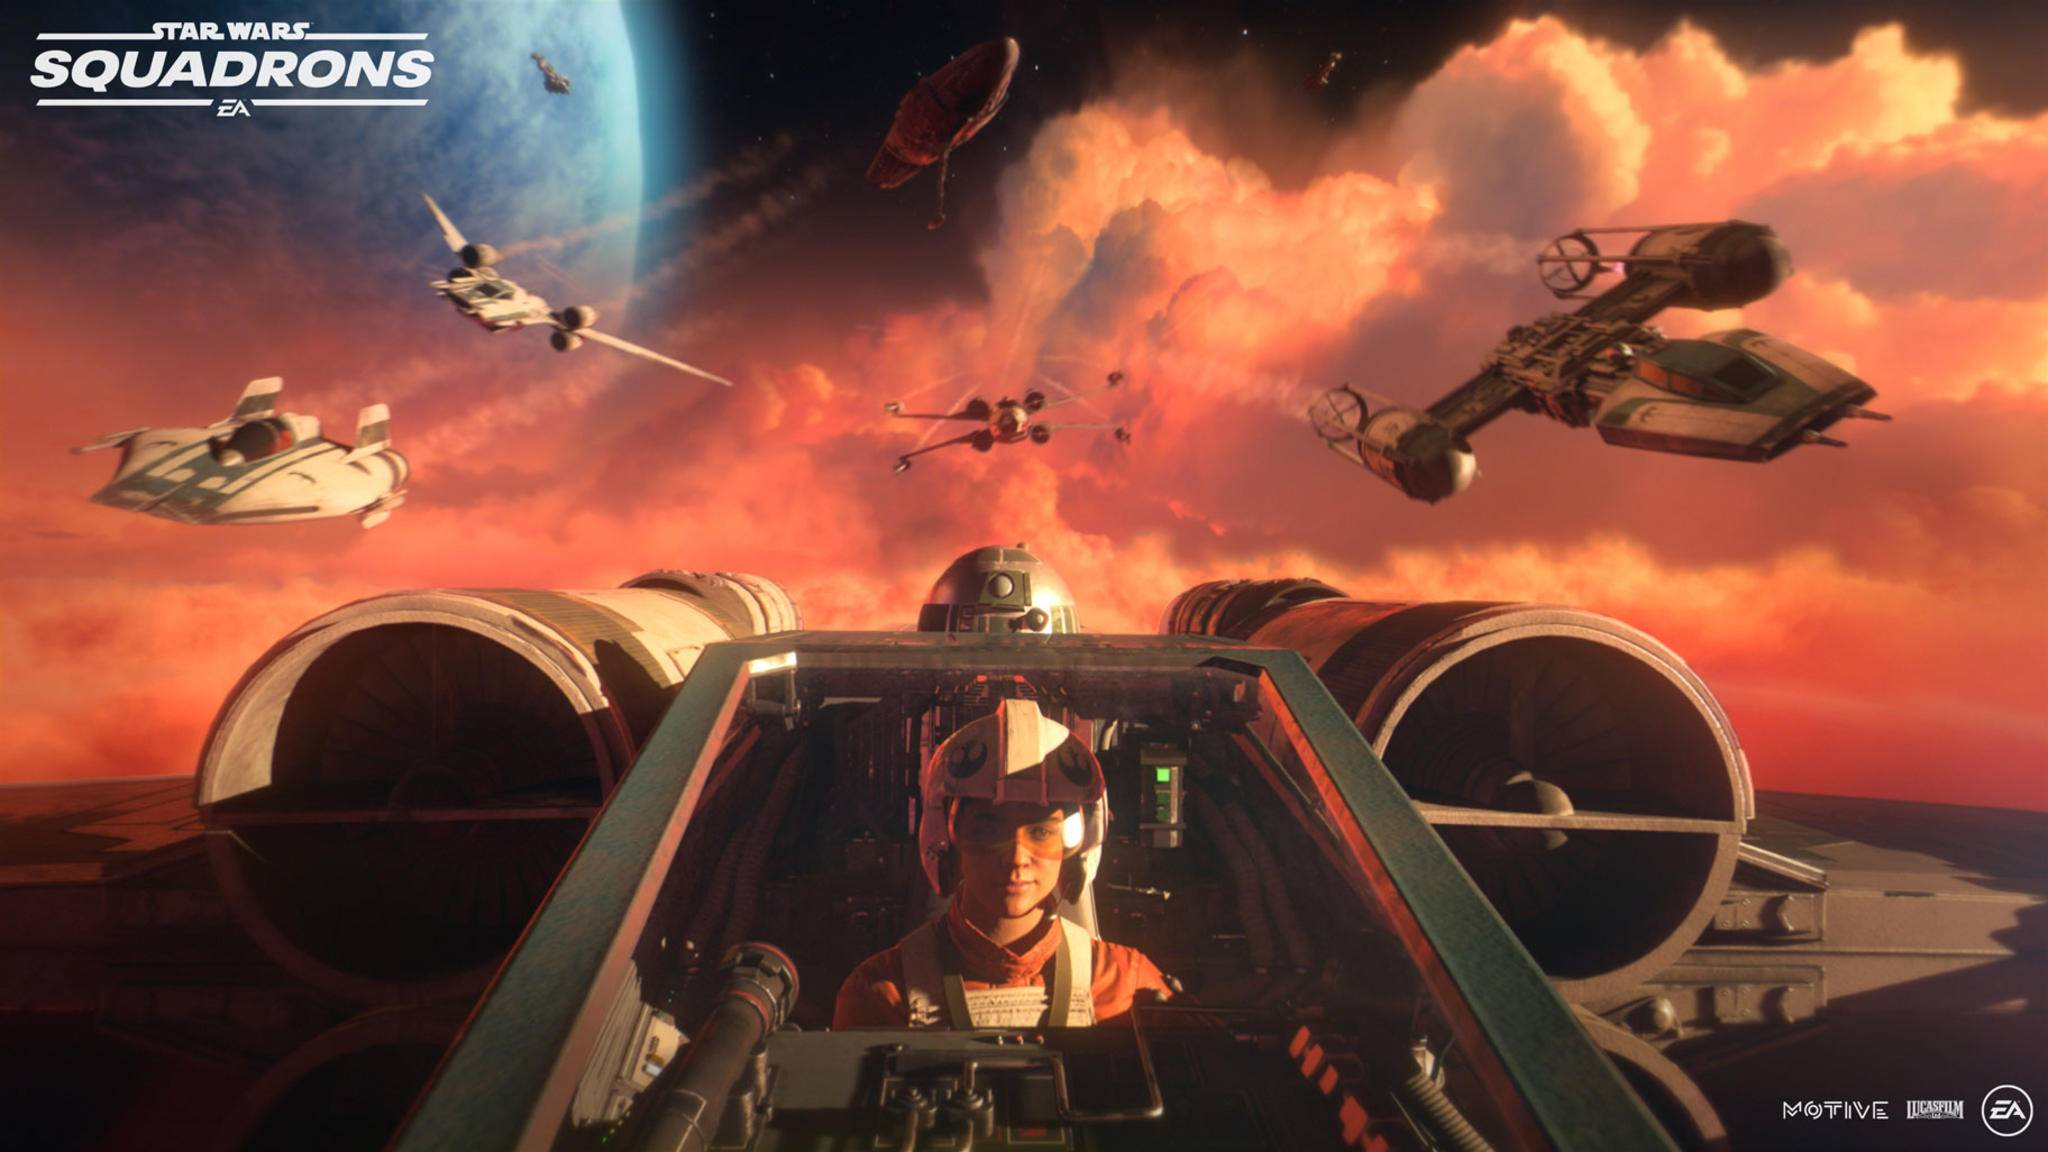 star-wars-squadrons-screenshot-cockpit-ea